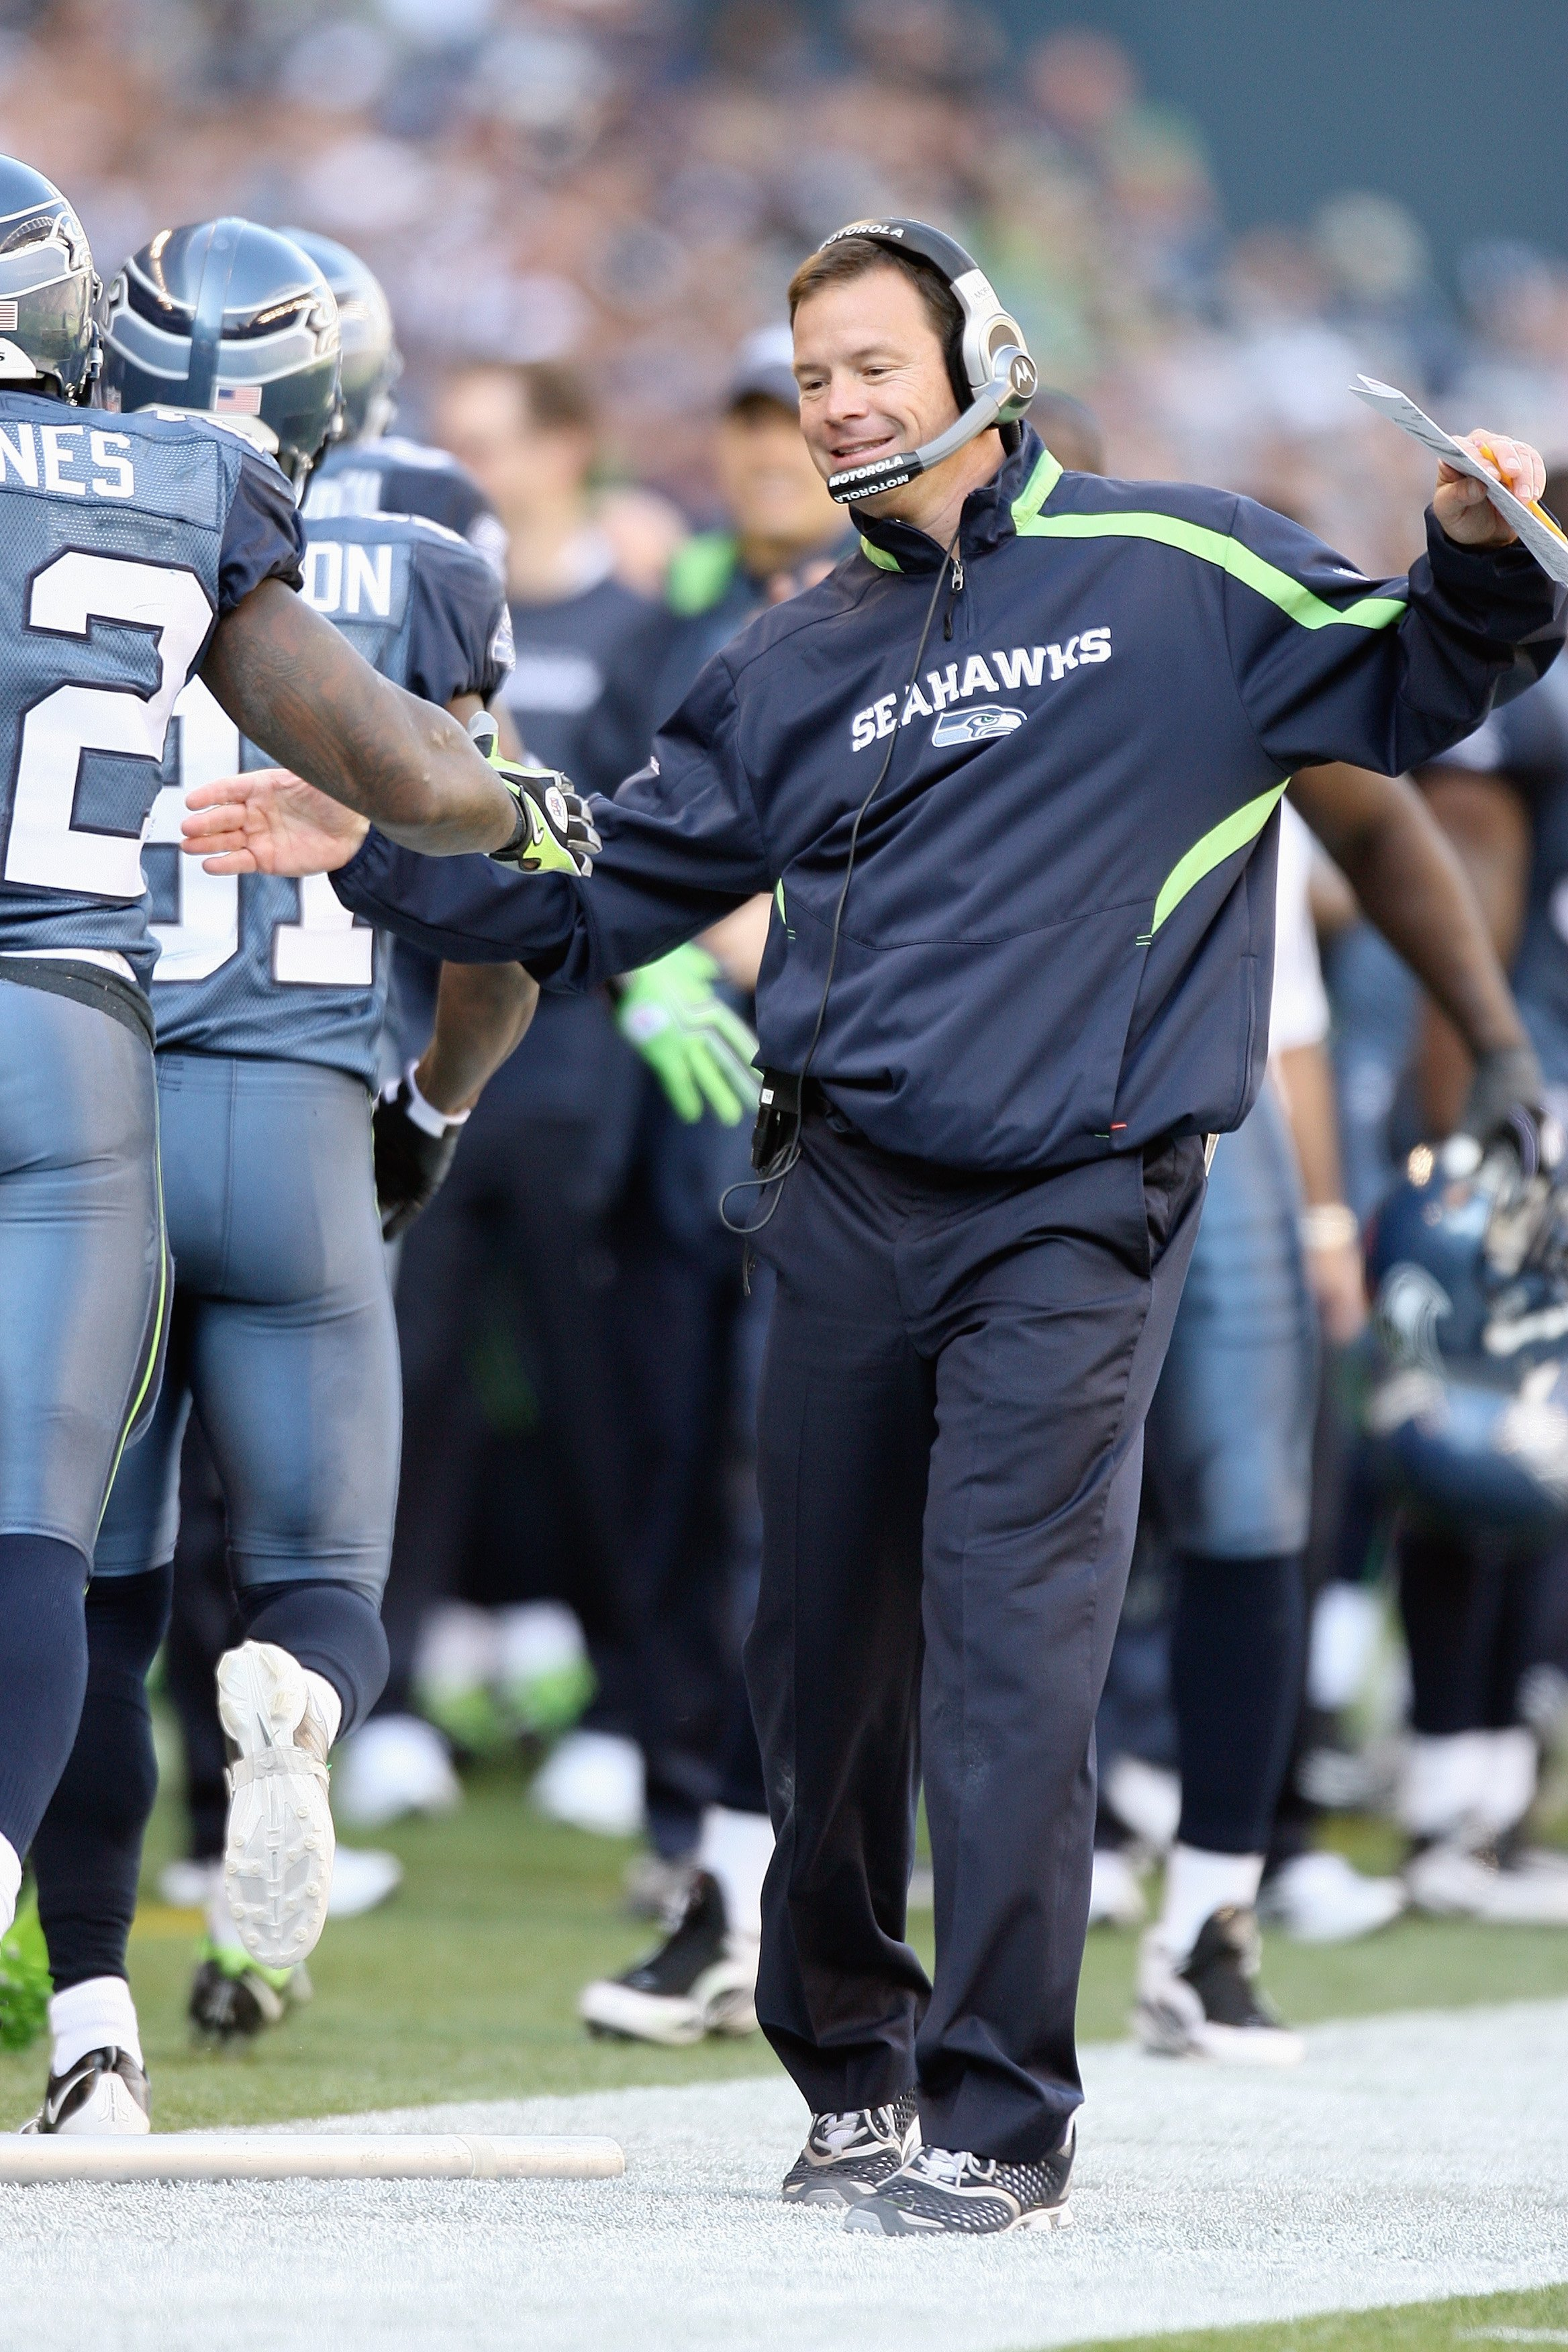 SEATTLE - OCTOBER 11: Head coach  Jim Mora of the Seattle Seahawks celebrates with his players during the game against the Jacksonville Jaguars on October 11, 2009 at Qwest Field in Seattle, Washington. The Seahawks defeated the Jaguars 41-0. (Photo by Ot